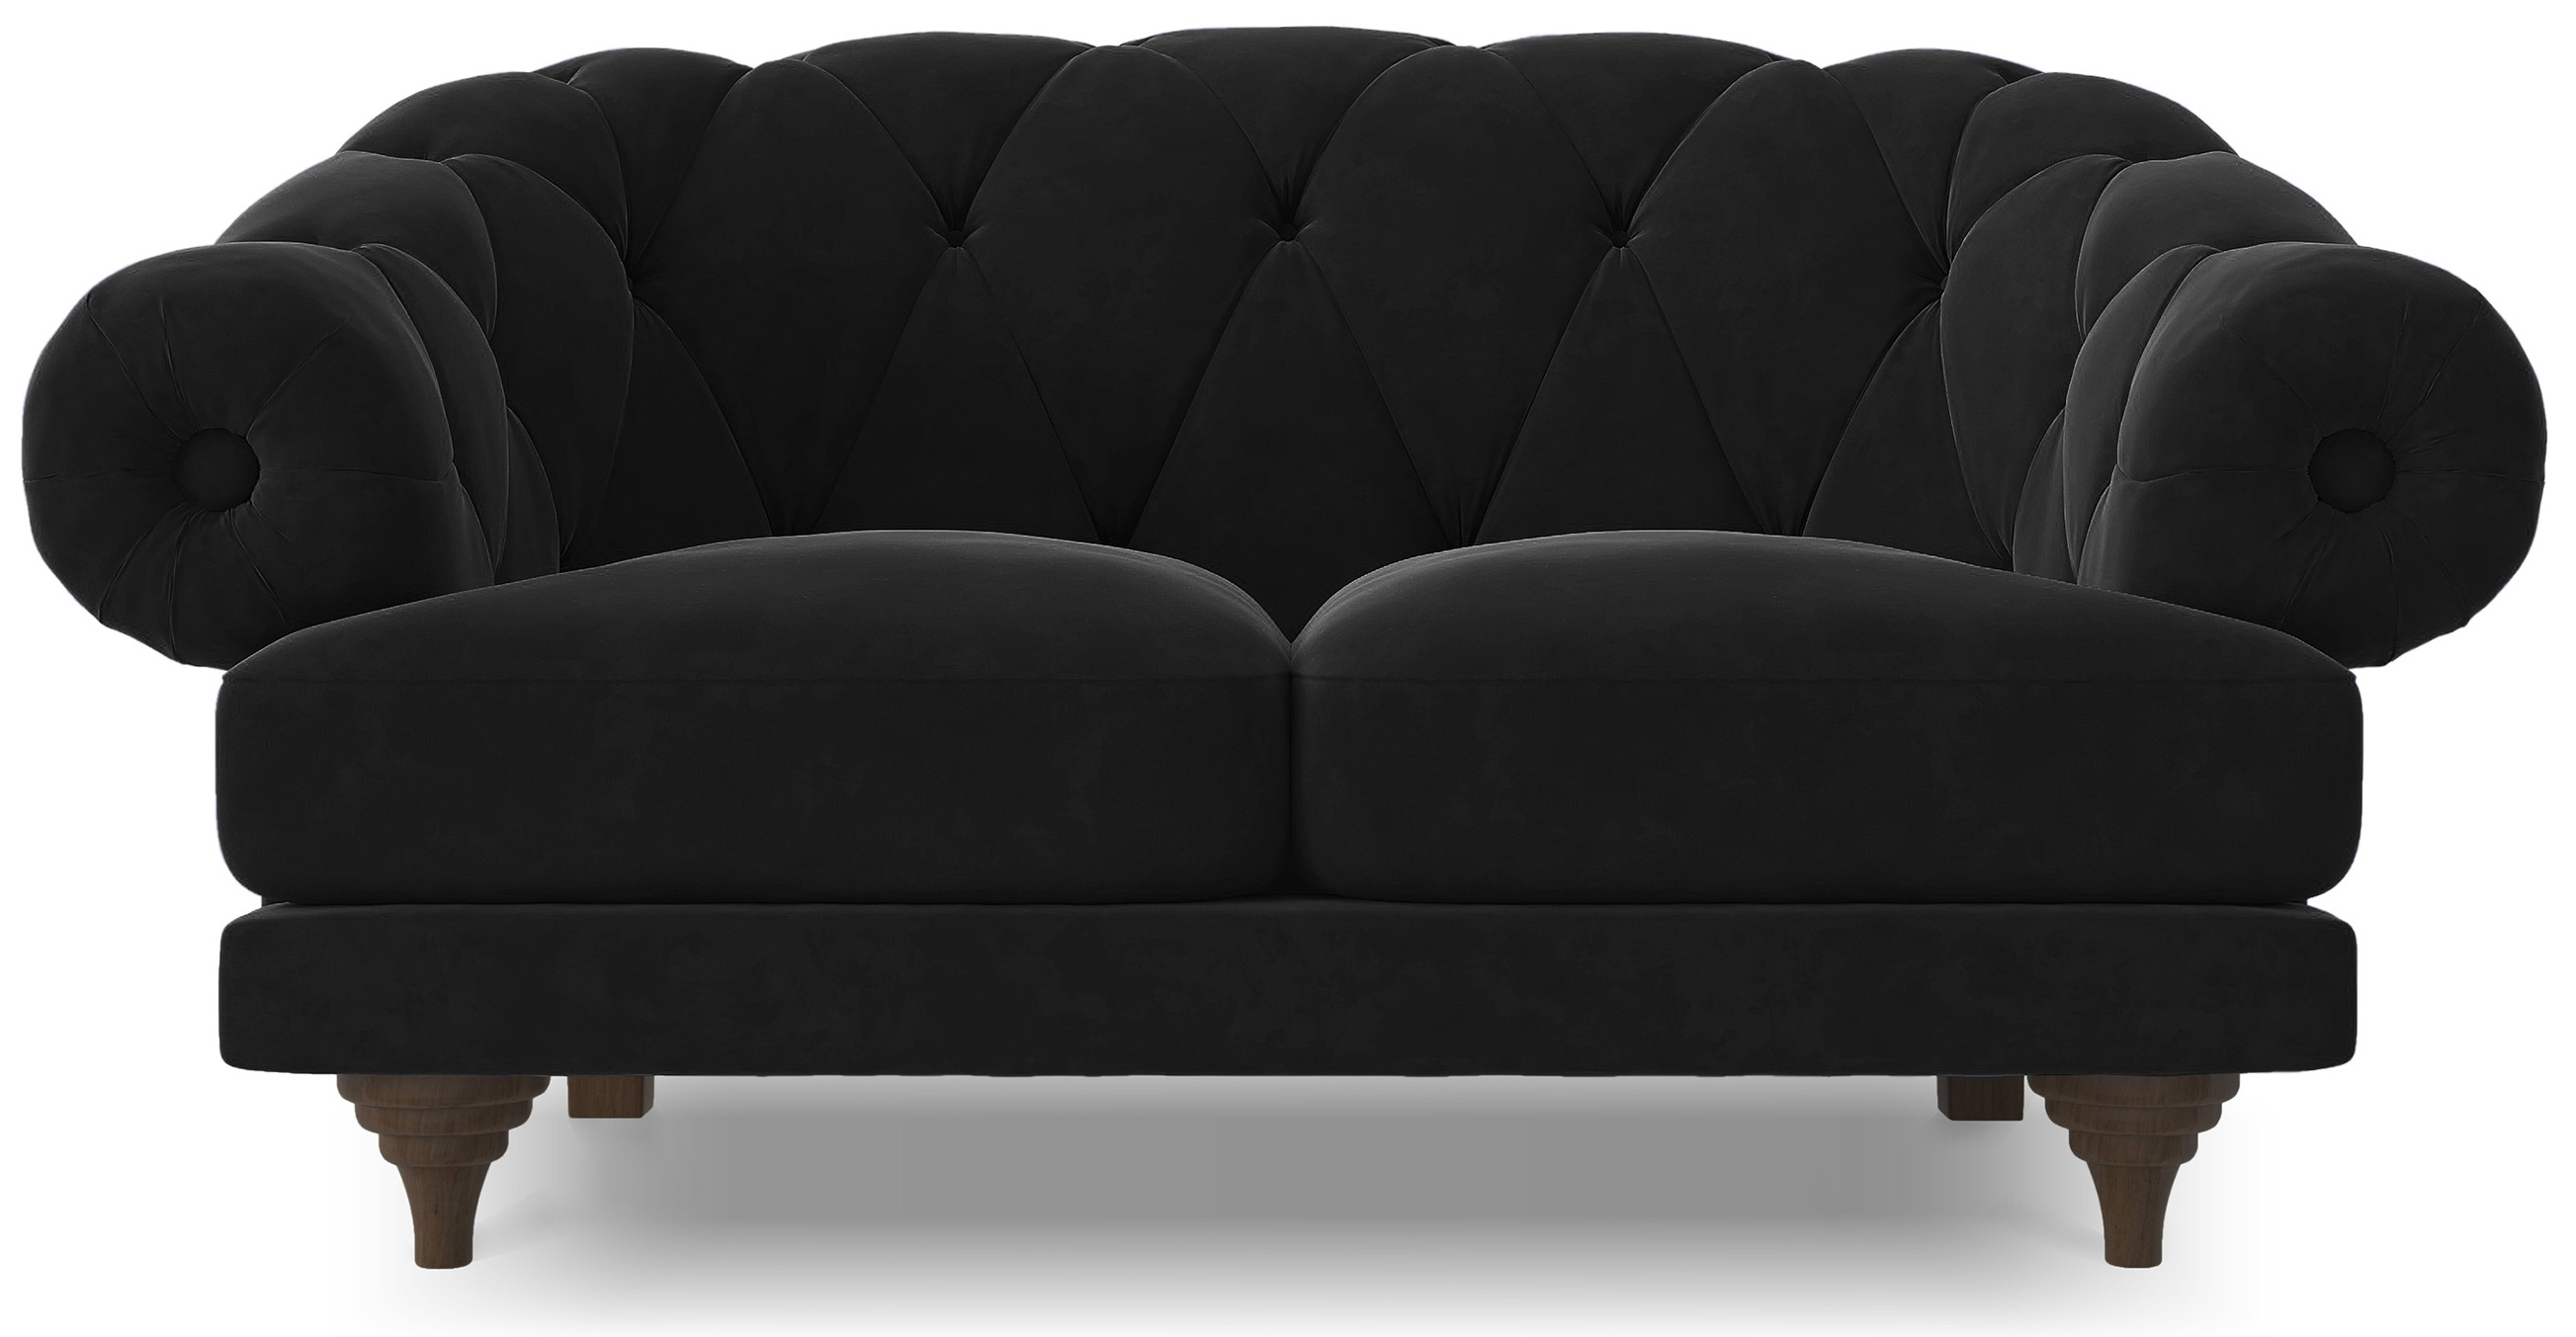 Canape Chesterfield De Qualite Canapé Ultra Confortable Velours Noir Chesterfield